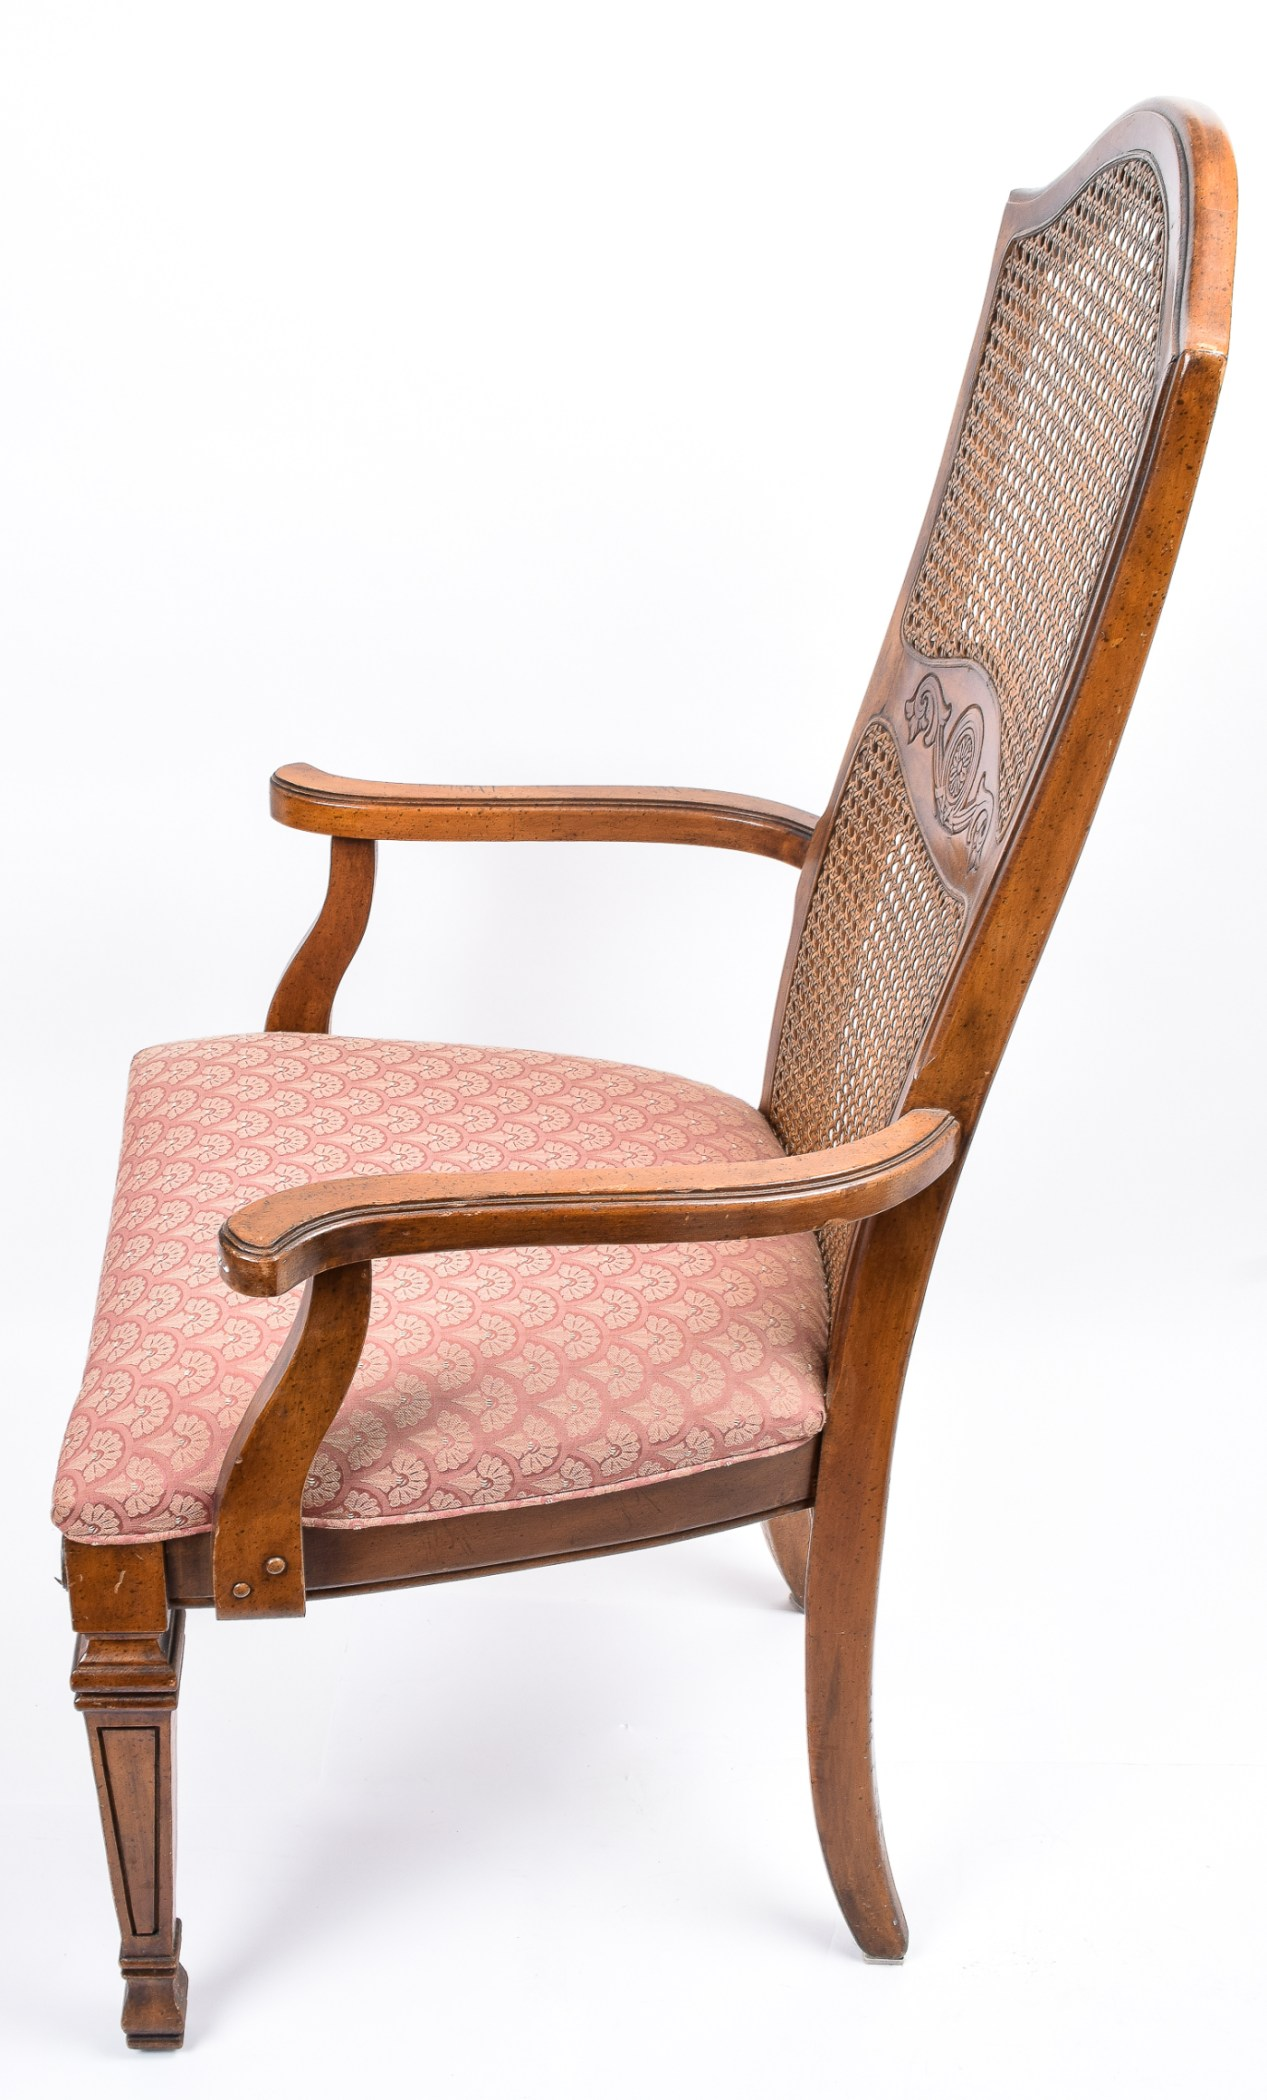 Vintage Cane Back Chairs Vintage French Provincial Style Cane Back Chairs Ebth